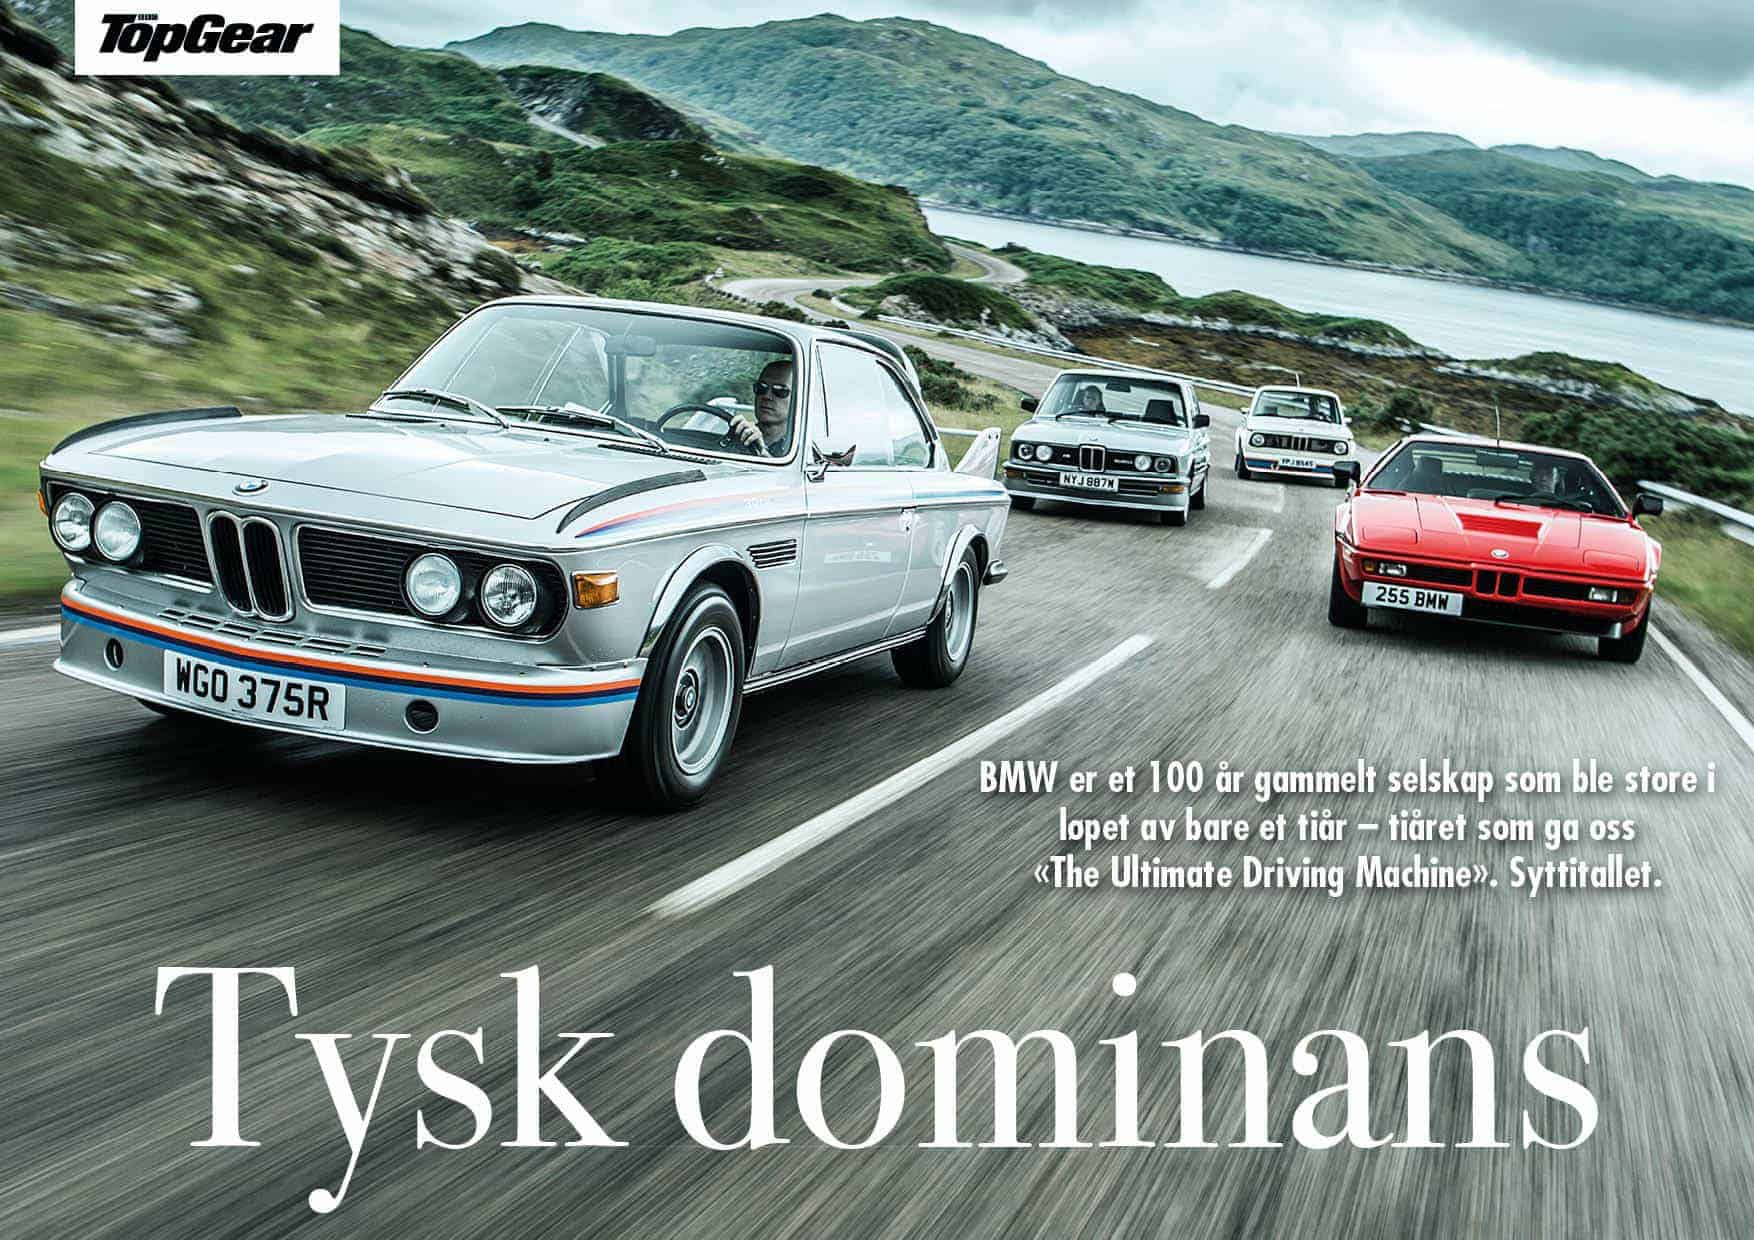 BMW: Tysk dominans